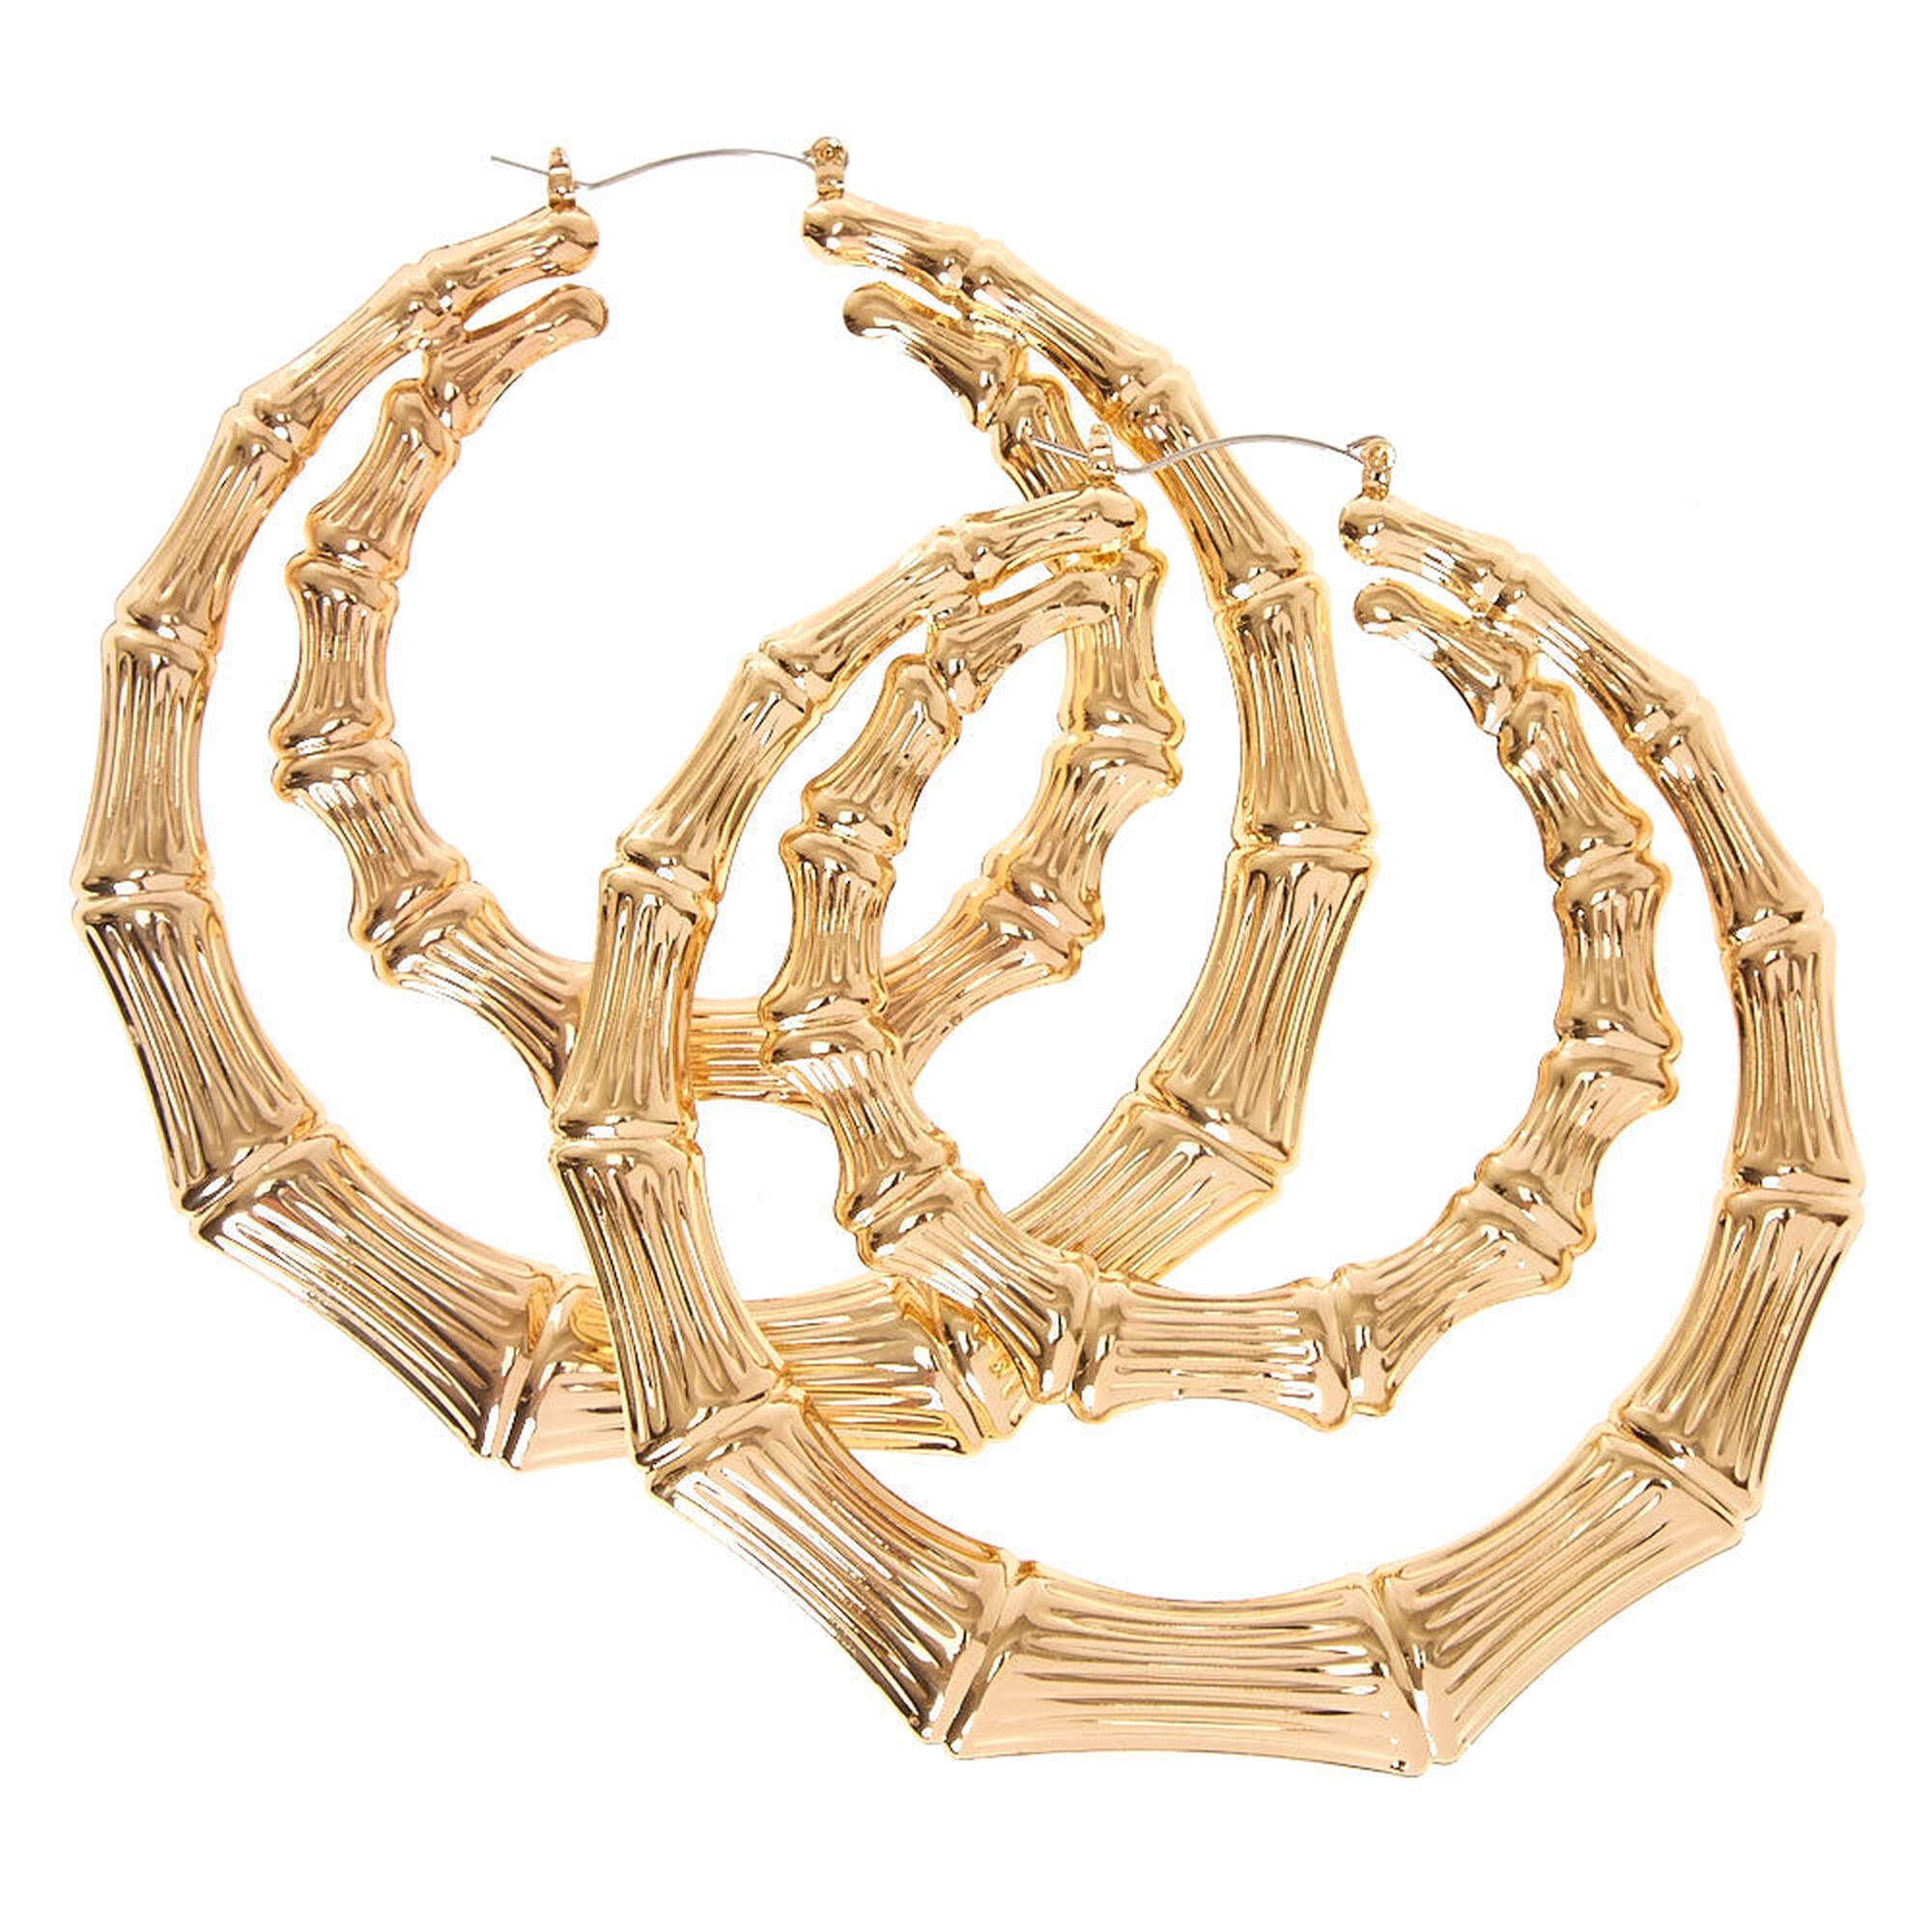 100mm Gold Tone Double Bamboo Hoop Earrings